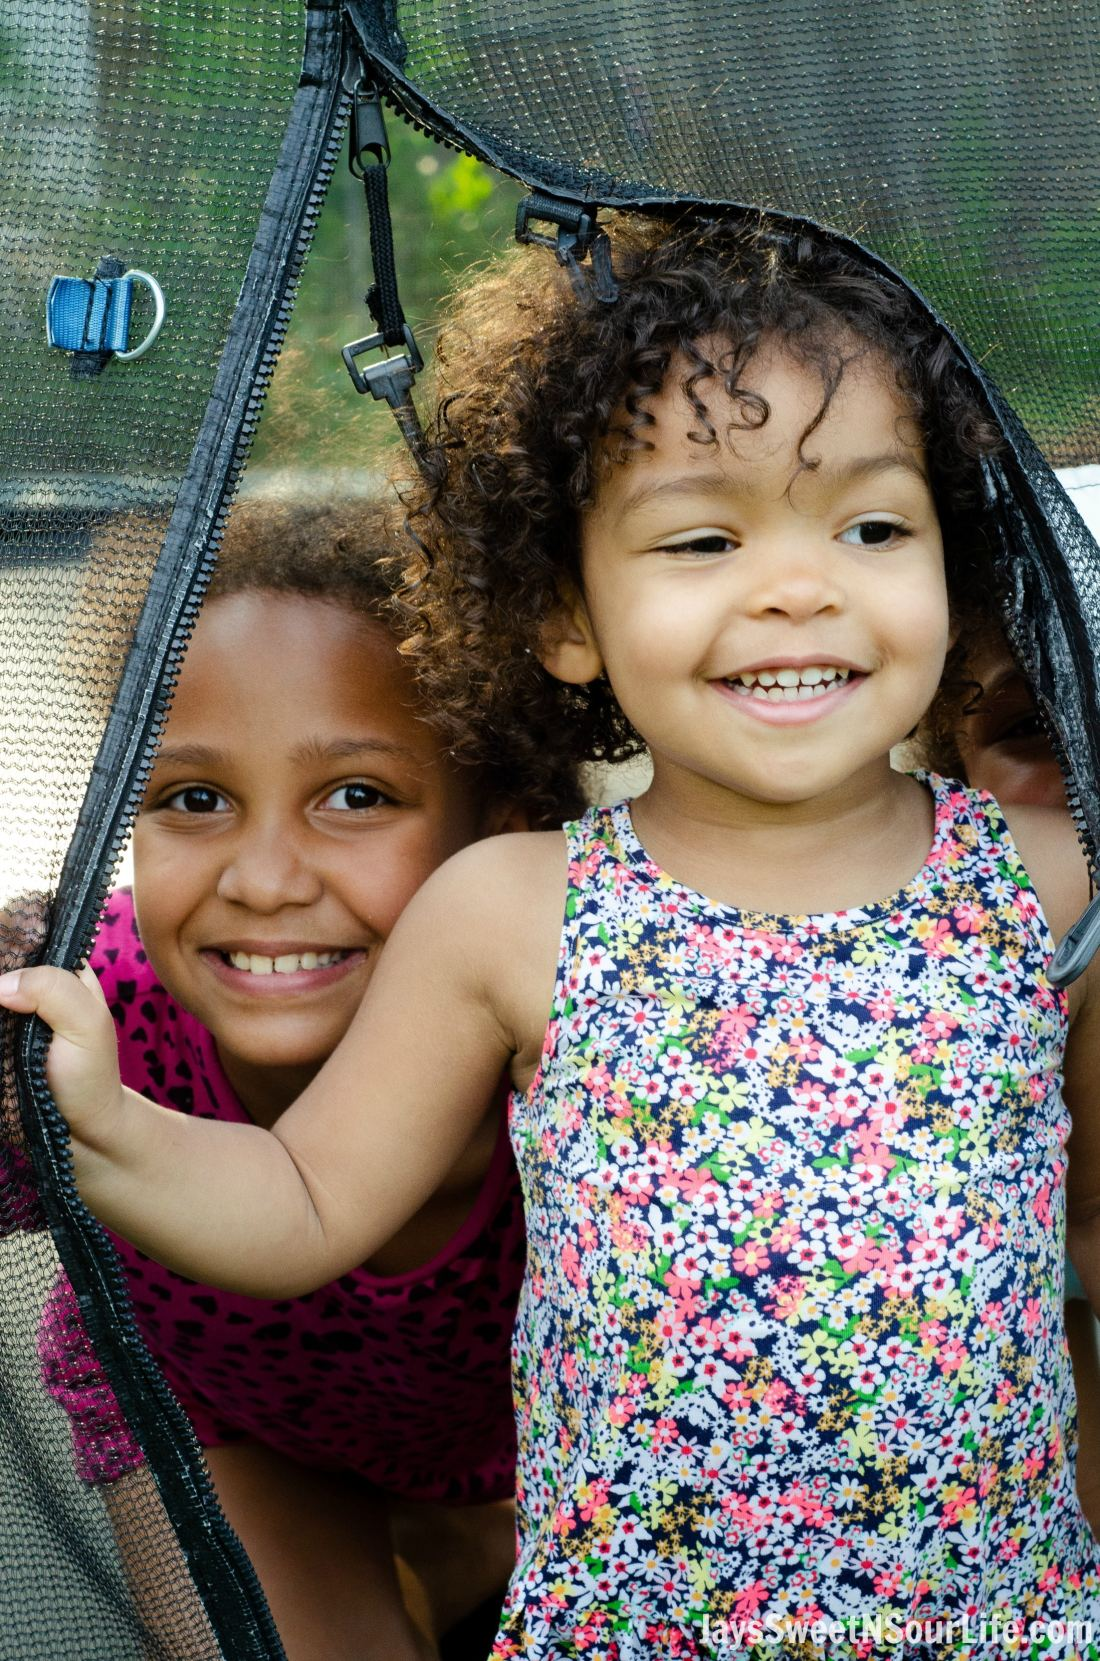 Litte african american girls smiling on a trampoline. Guests of a Beach Sundae Party.